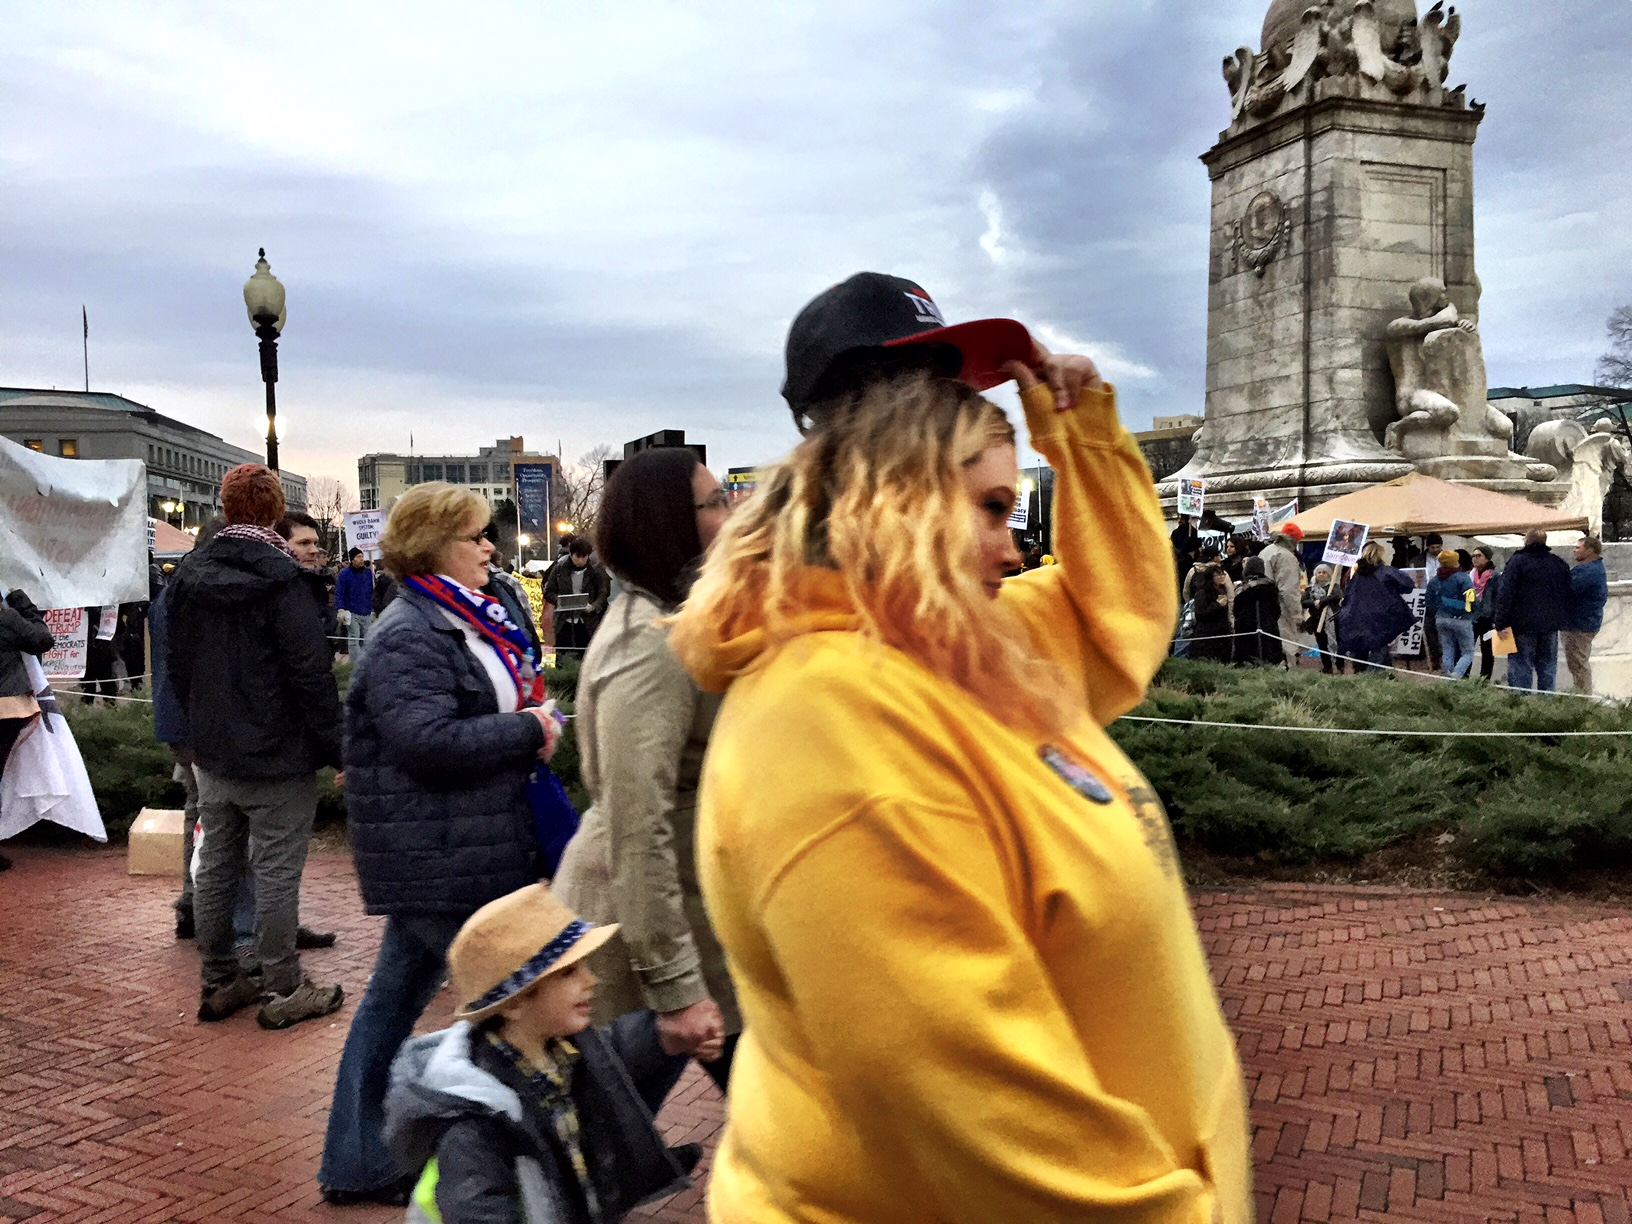 Trump supporters file past protesters underneath a cloudy sky the morning of Inauguration Day. (Courtesy Cami McCormick)